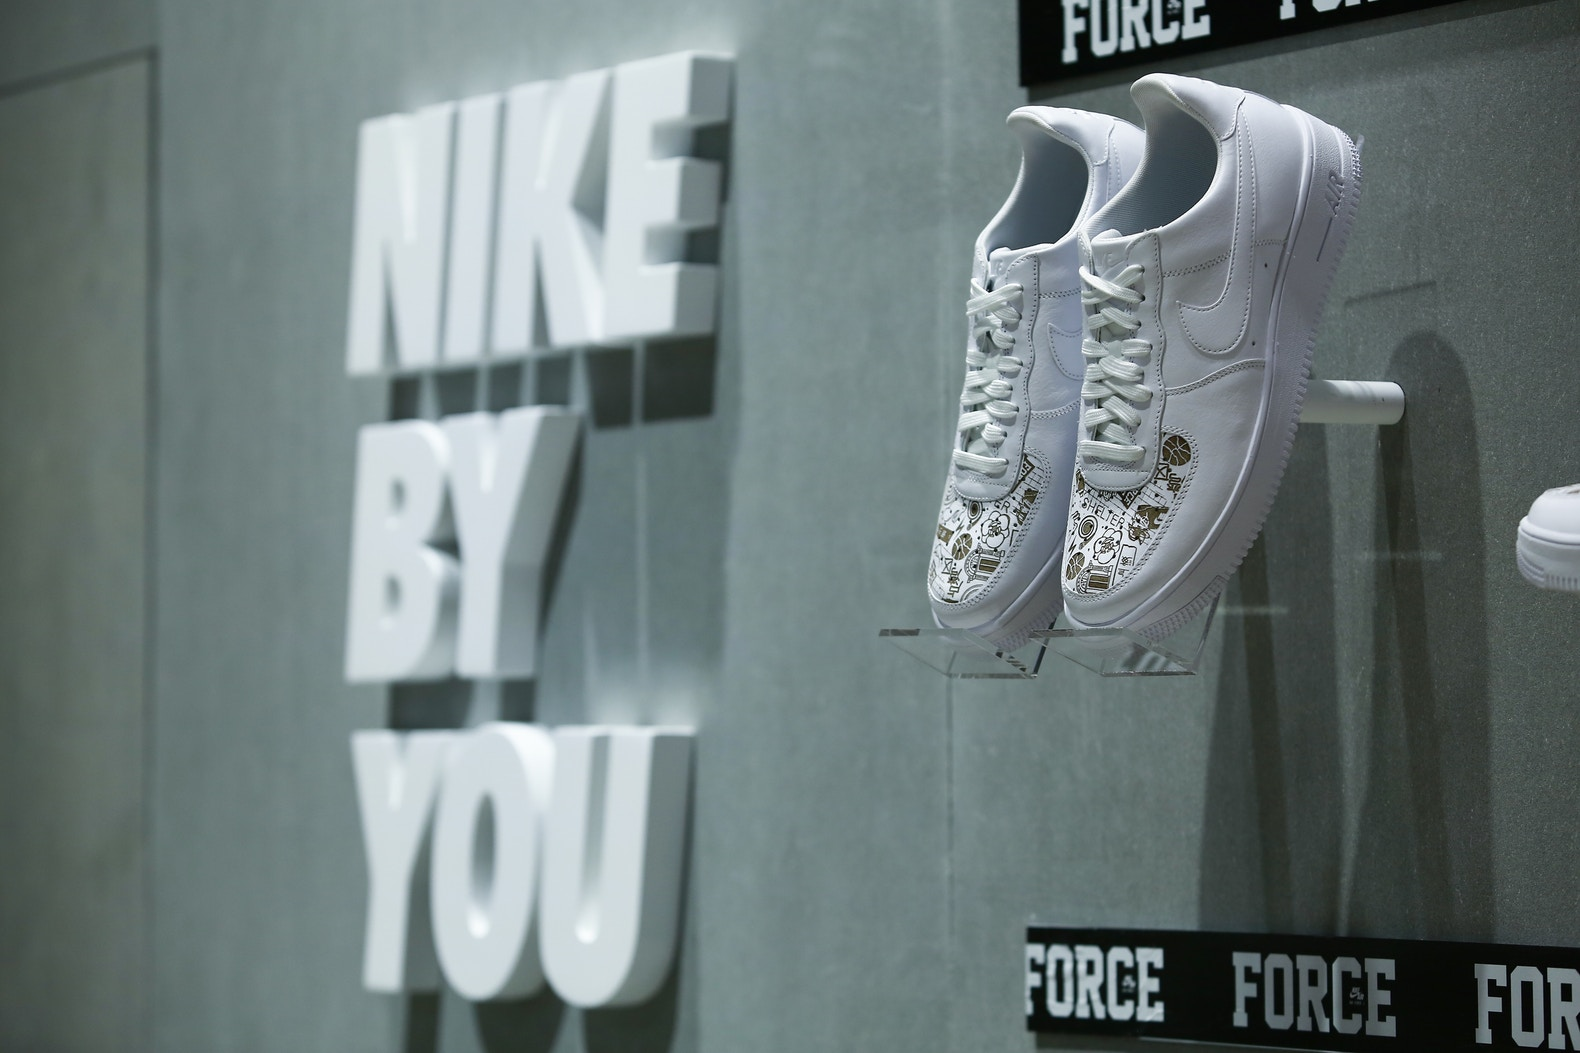 http-%2F%2Fhypebeast.com%2Fimage%2F2017%2F09%2Fnike-sportswear-the-court-by-force-booth-yohood-3.jpg